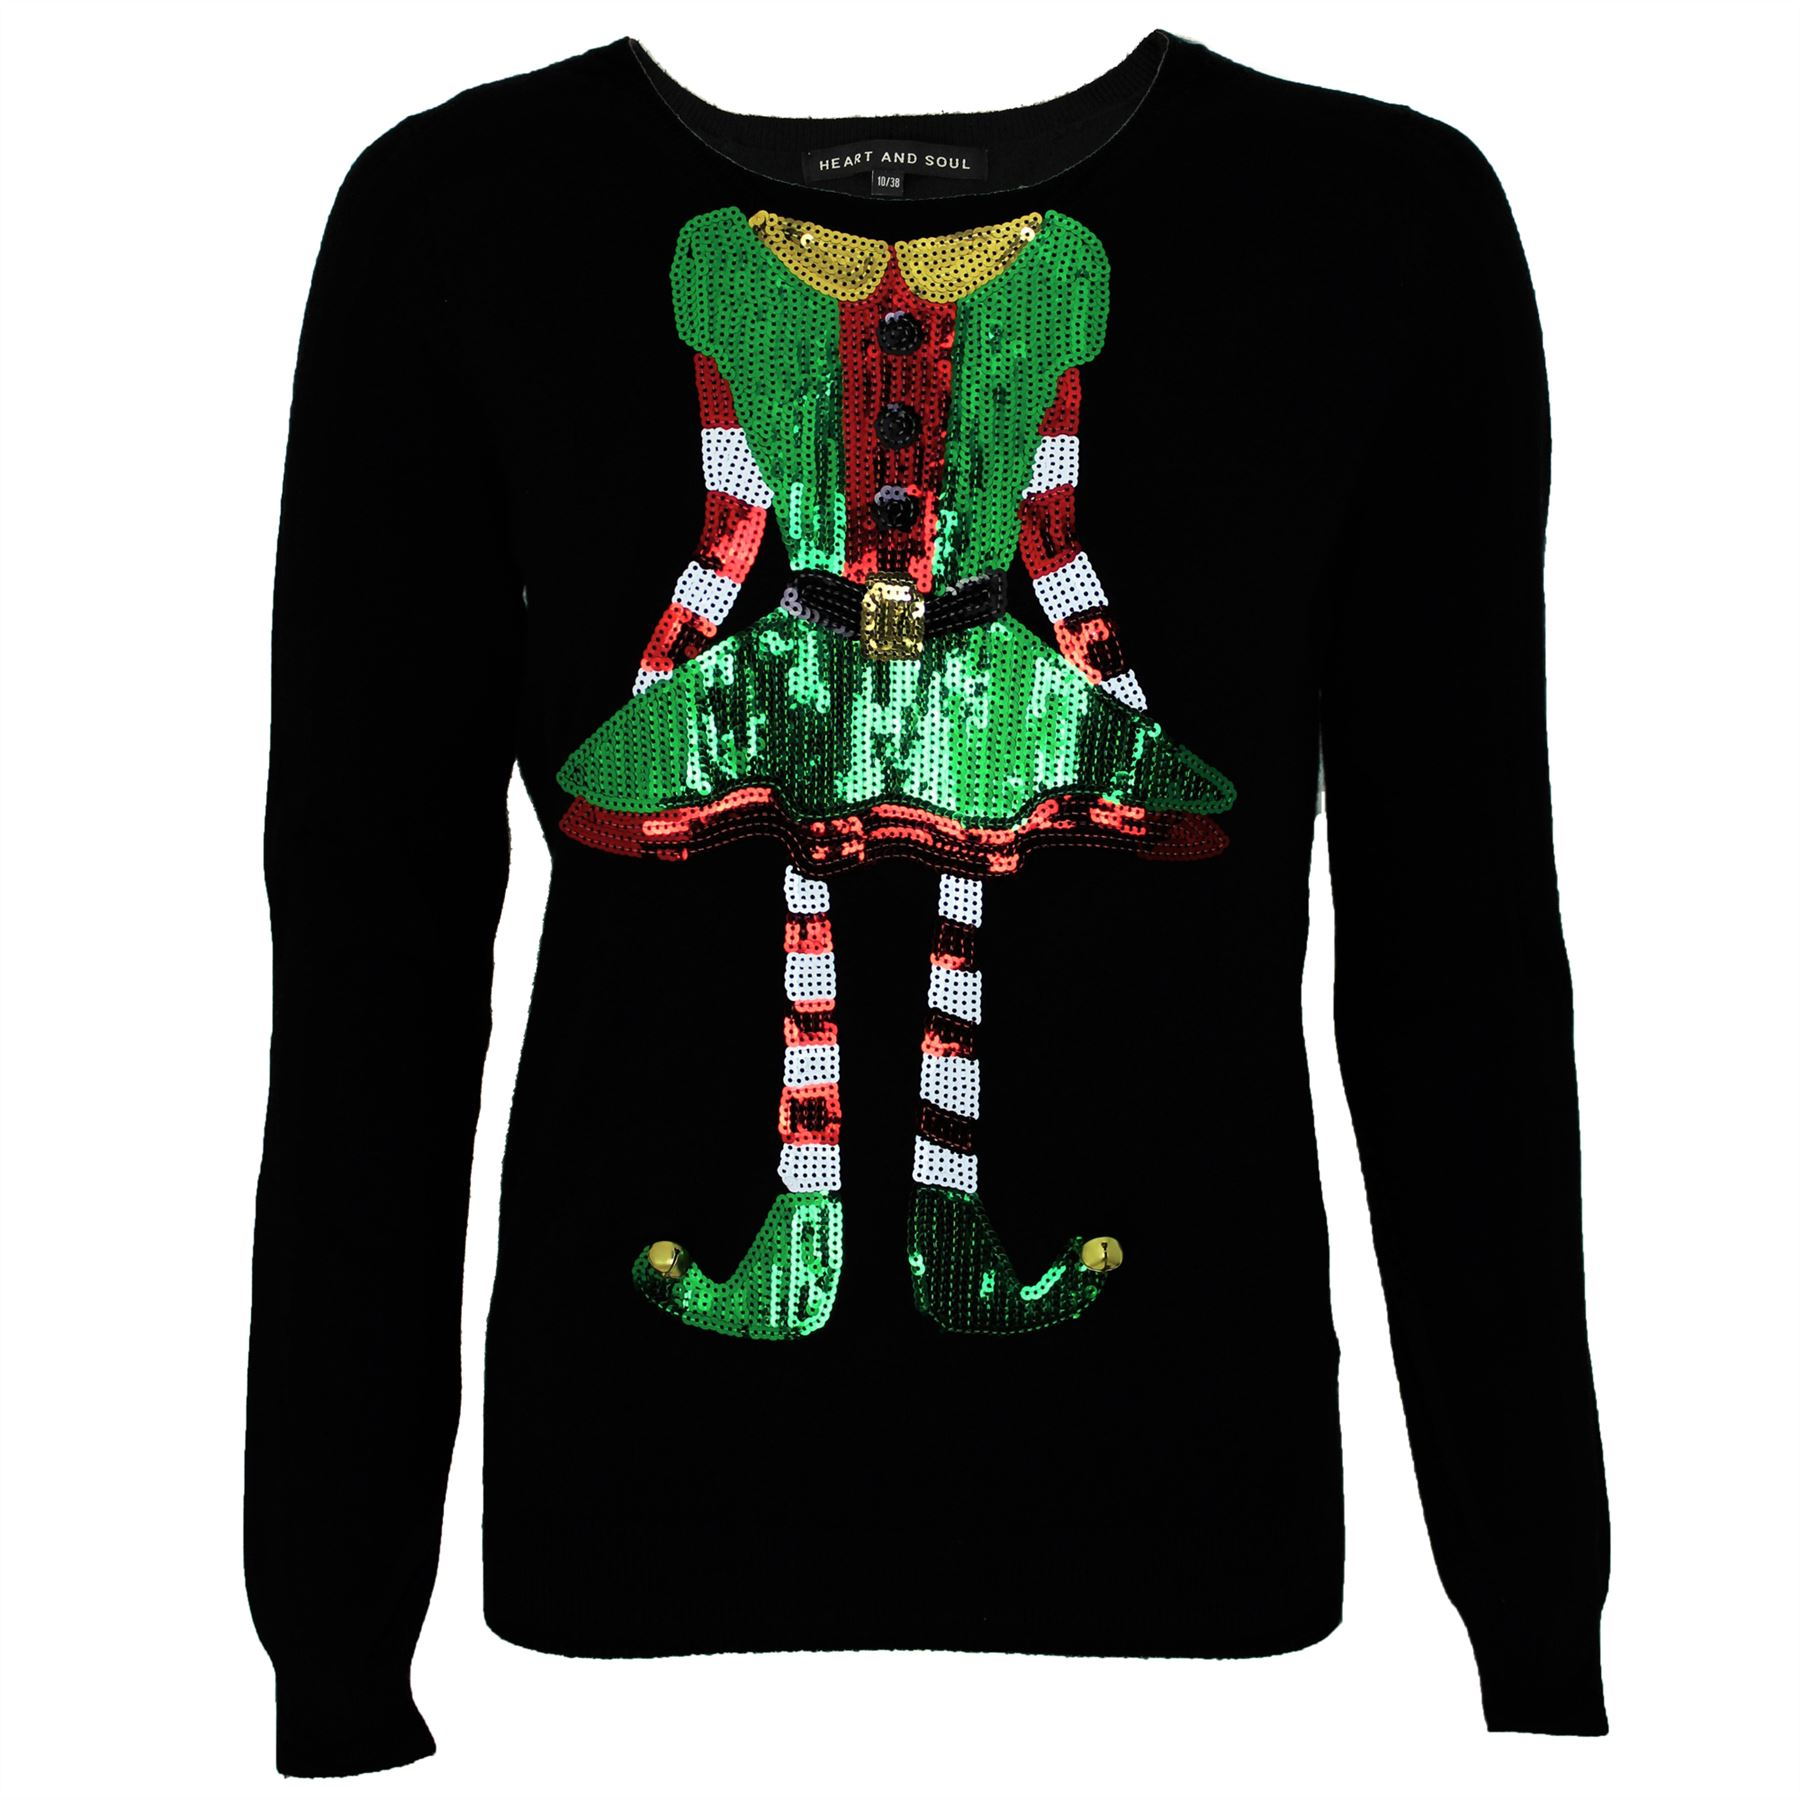 Christmas Top.Details About Womens Ladies Christmas Elf Sequins Xmas Novelty Jumper Top By Heart Soul